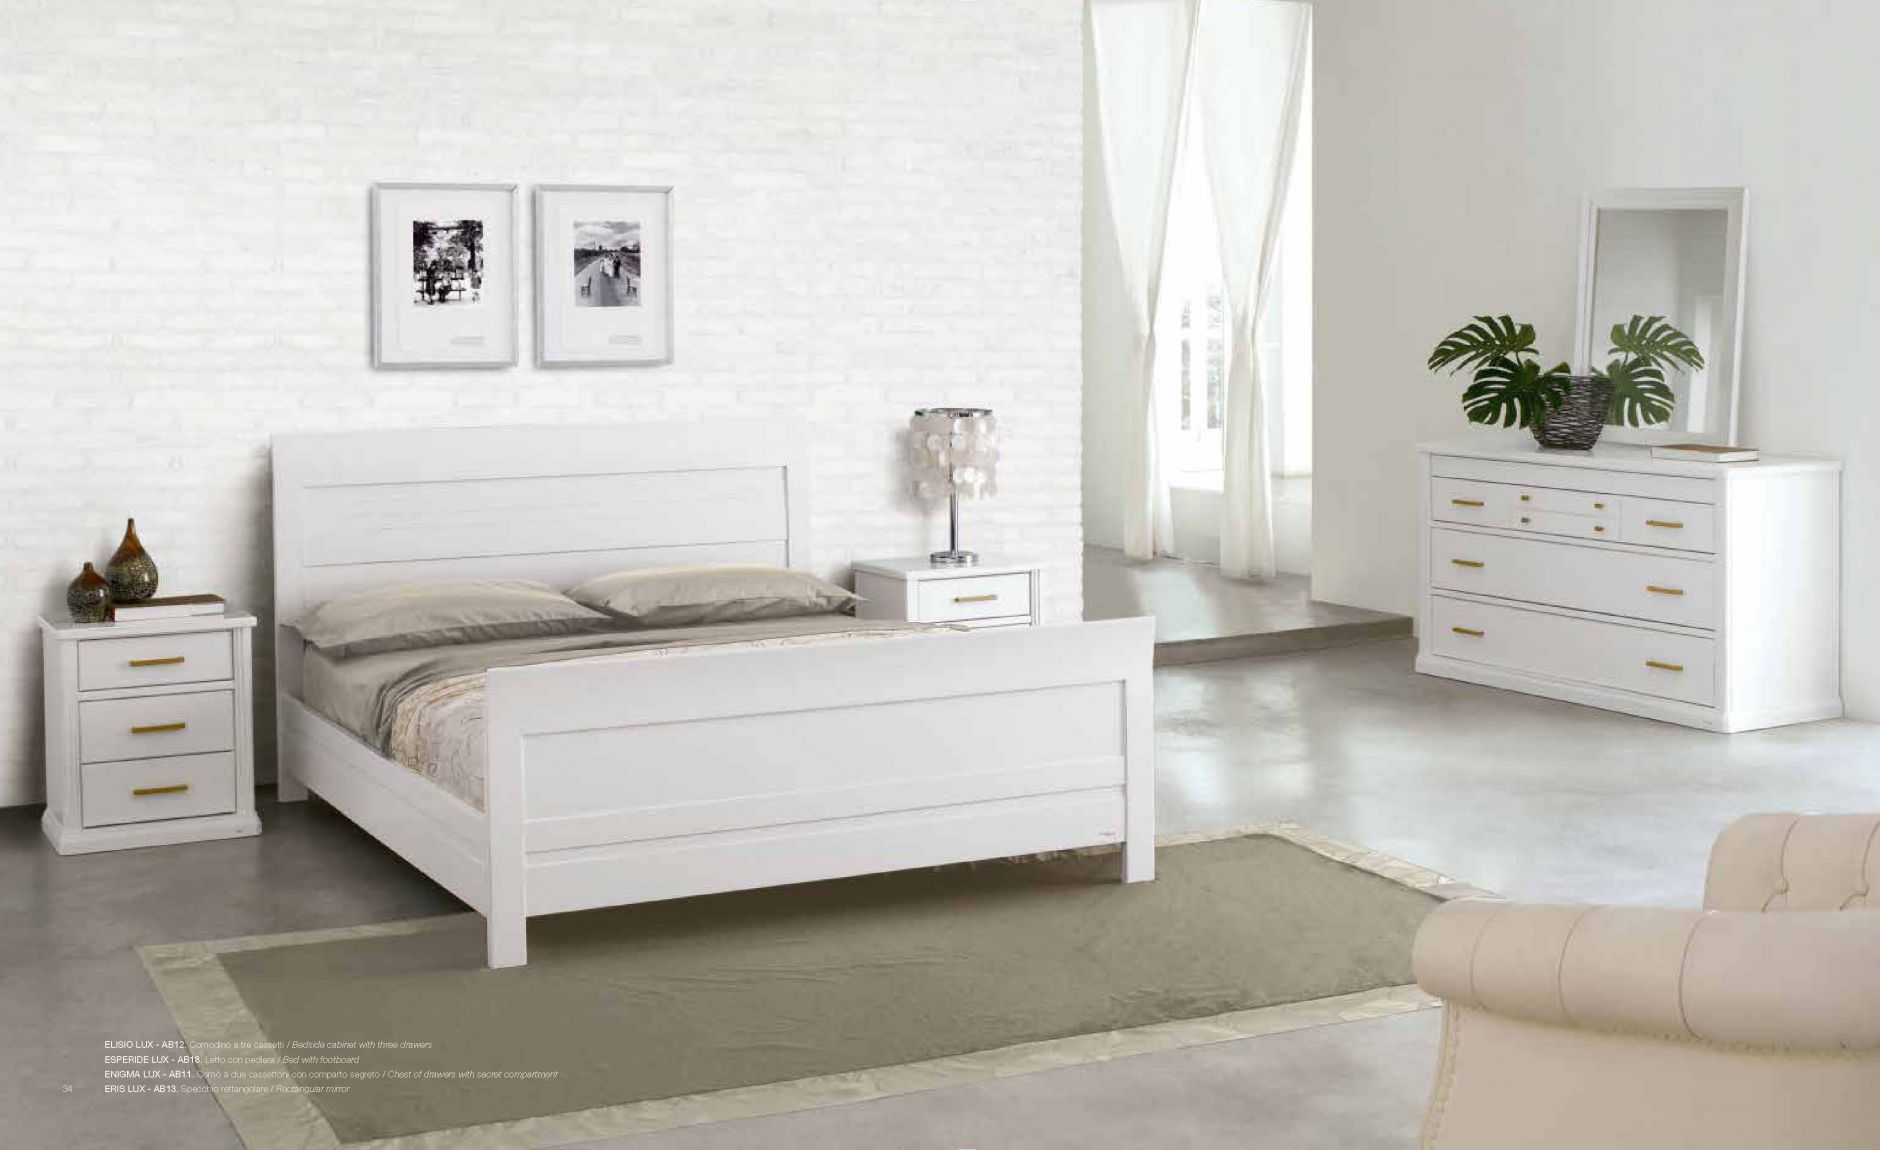 schlafzimmer schlafzimmer accademia del mobileserie l 39 esprit luxdie m bel aus italien. Black Bedroom Furniture Sets. Home Design Ideas